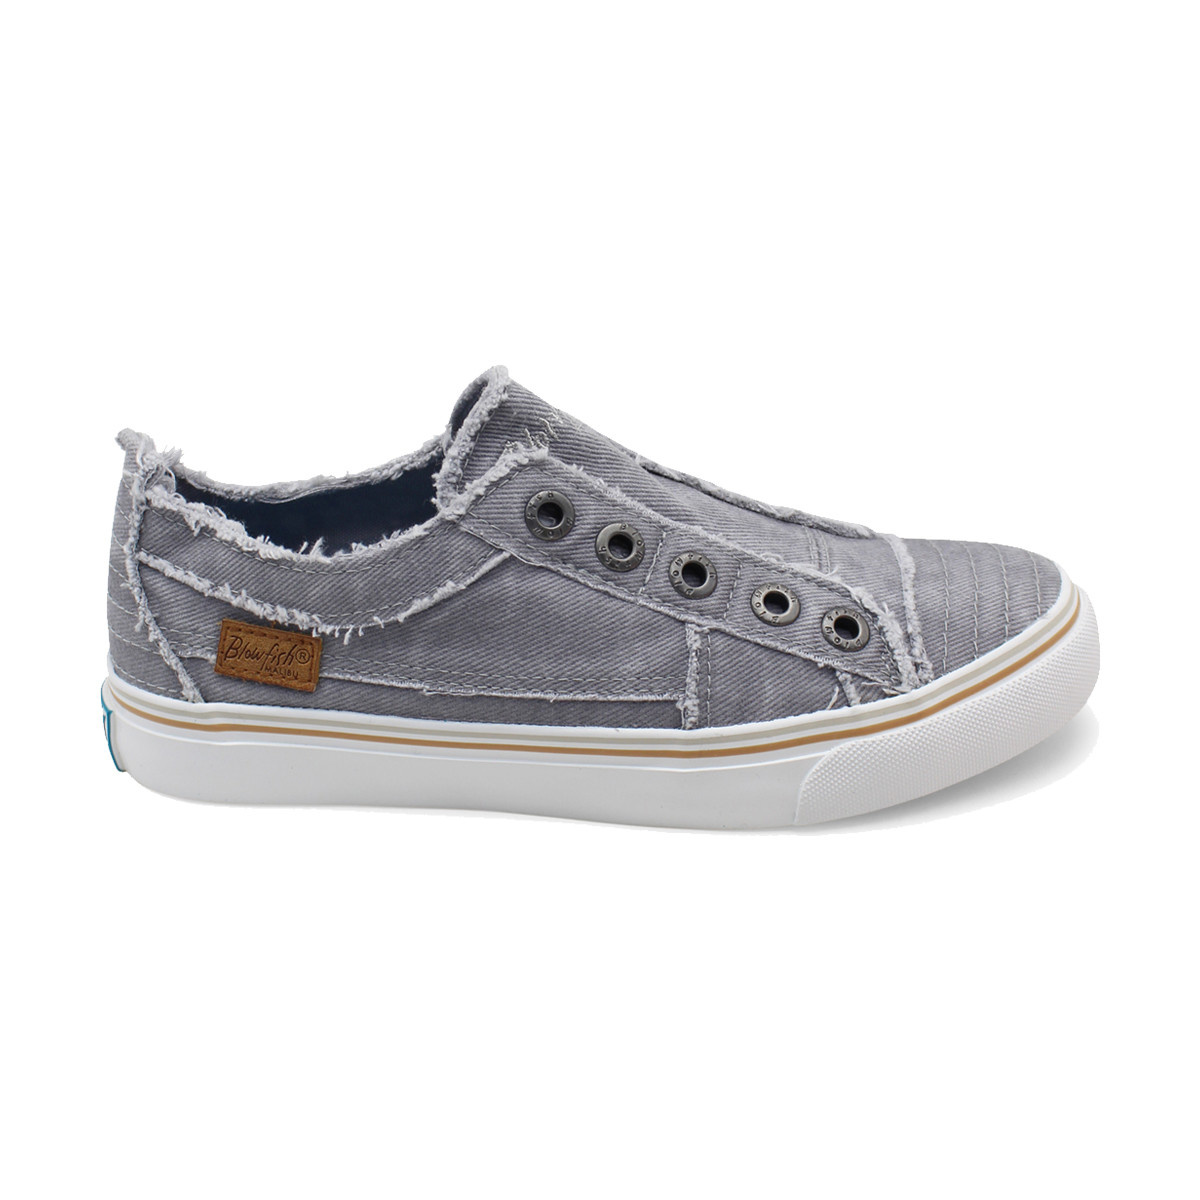 Blowfish Malibu Blowfish Women's Play Lt Grey / Hipster Smoke